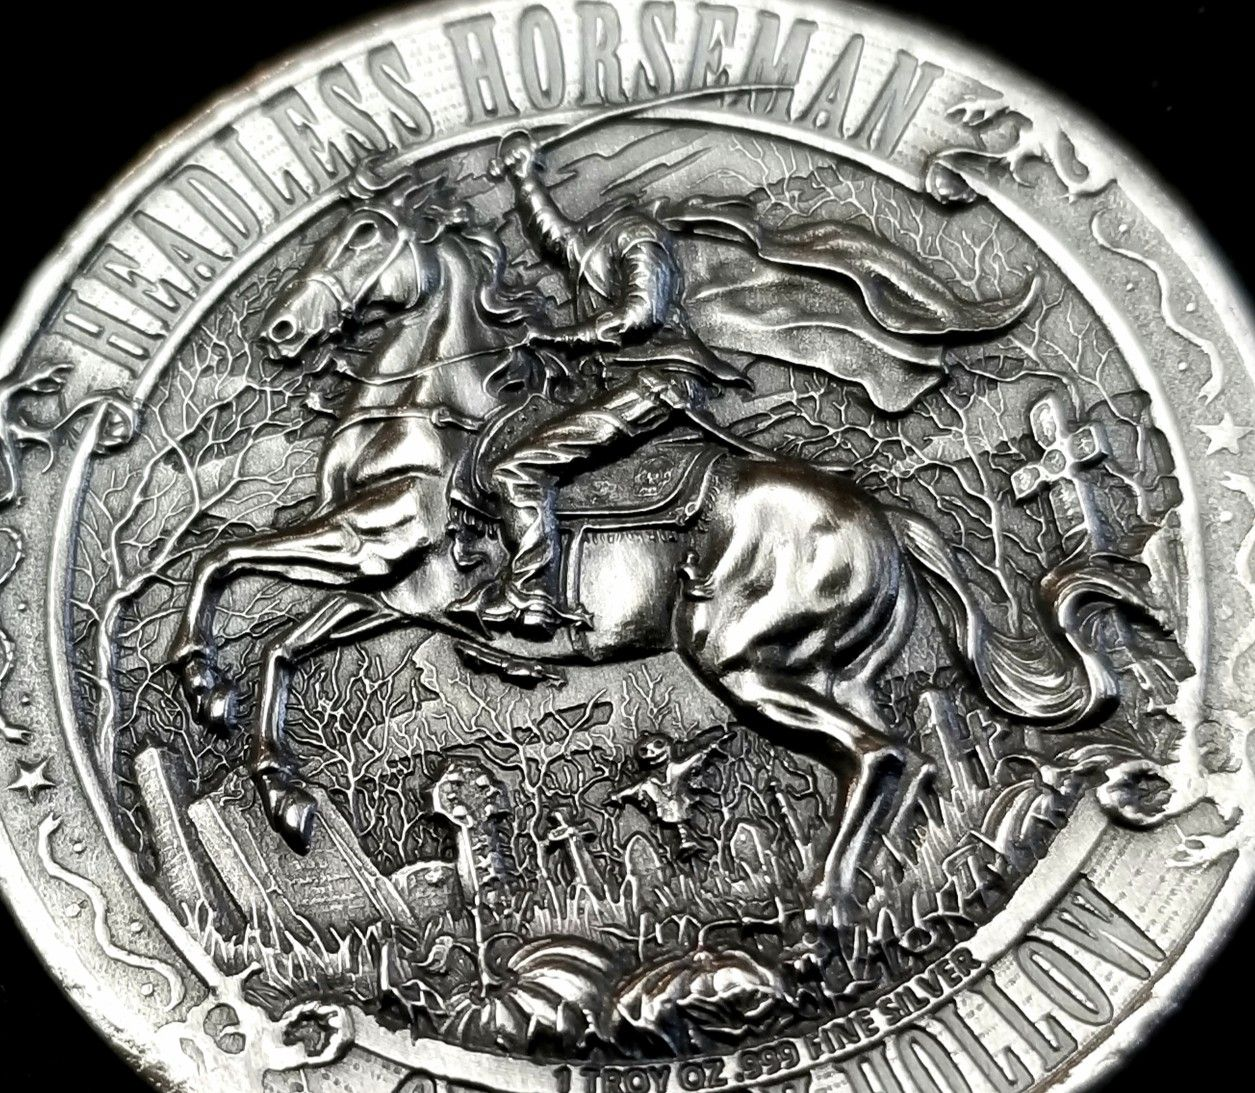 Headless Horseman Of Sleepy Hollow 1 Troy Ounce Of Silver In 2020 Apmex Antique Coins Ebay